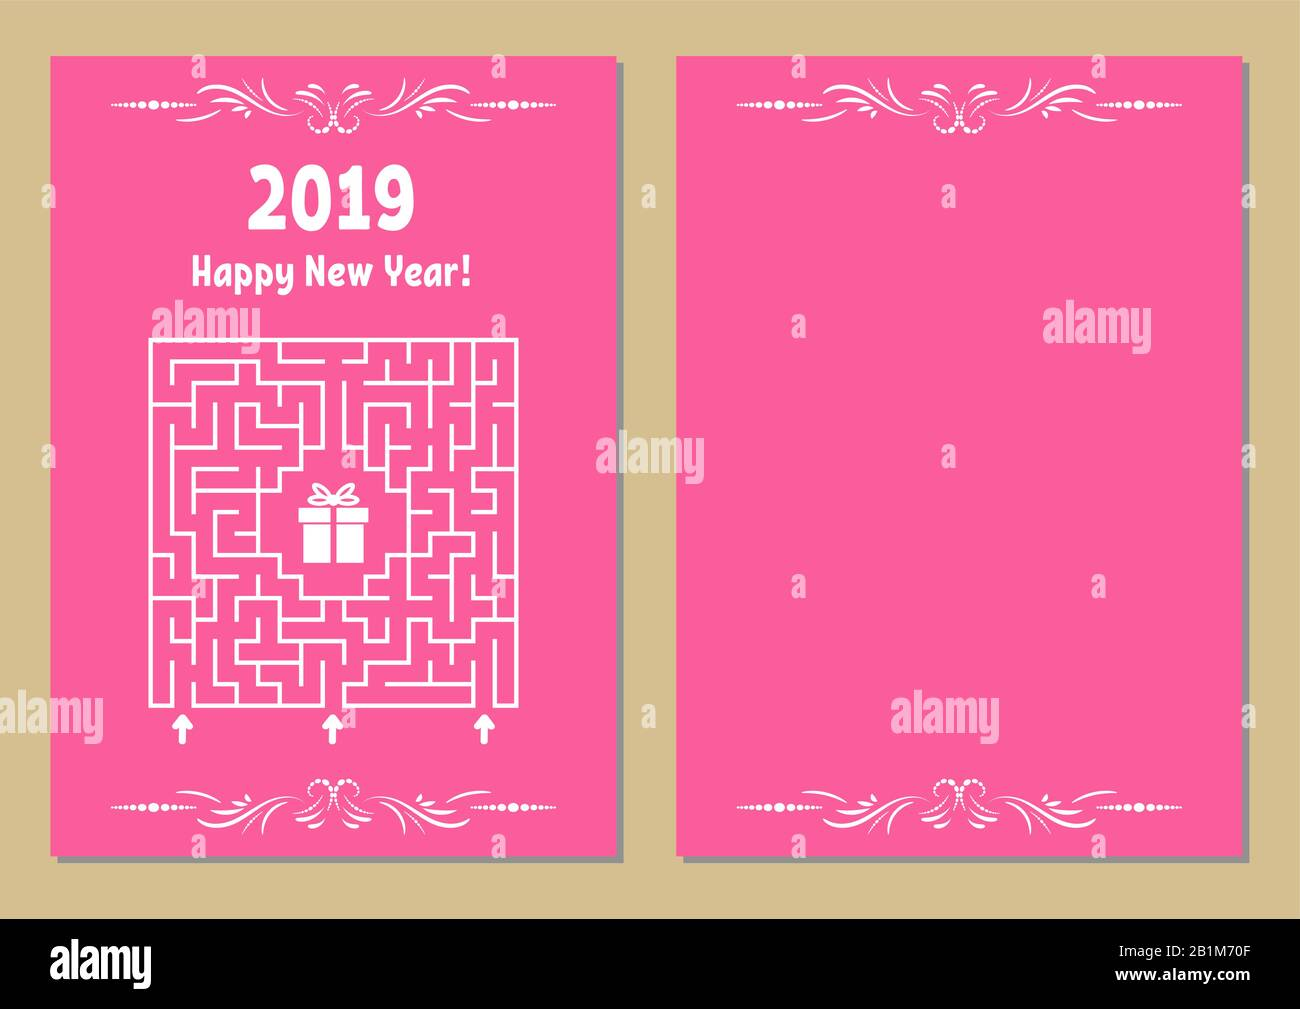 Color Christmas Greeting Card With A Square Maze Find The Right Path To The Gift Game For Kids Puzzle For Children Maze Conundrum Vector Illustra Stock Vector Image Art Alamy